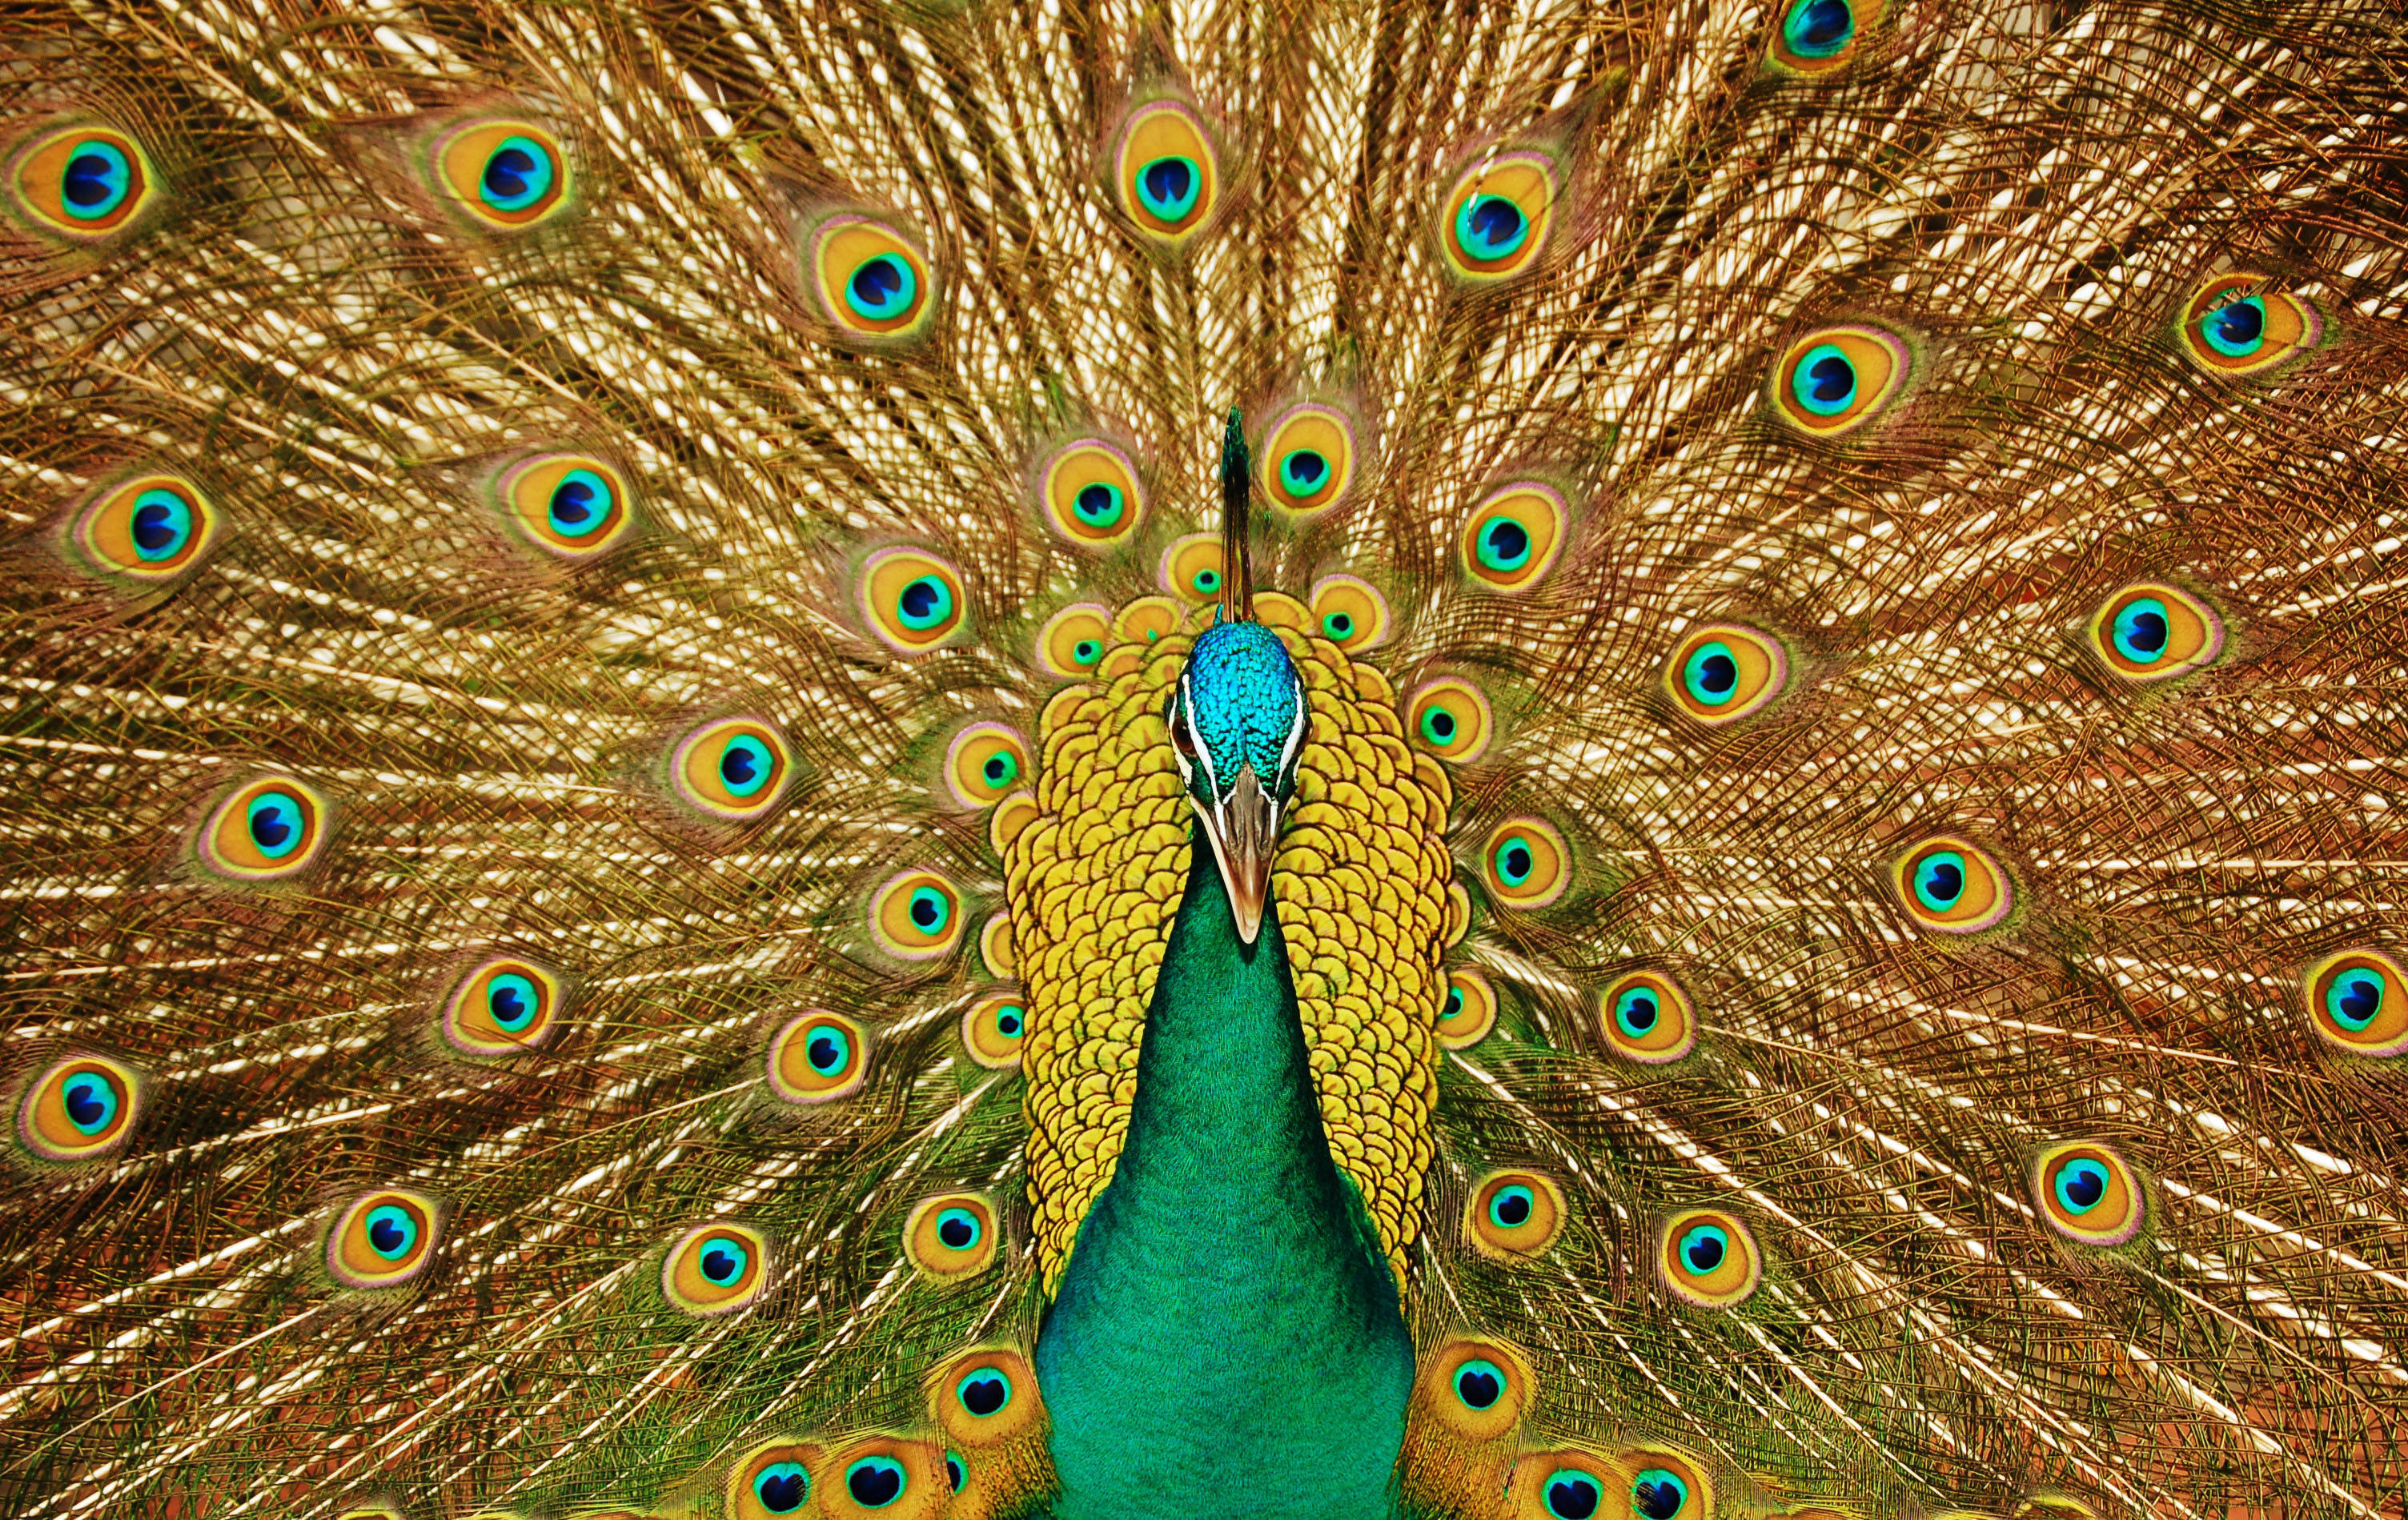 Beautiful animated peacock pictures